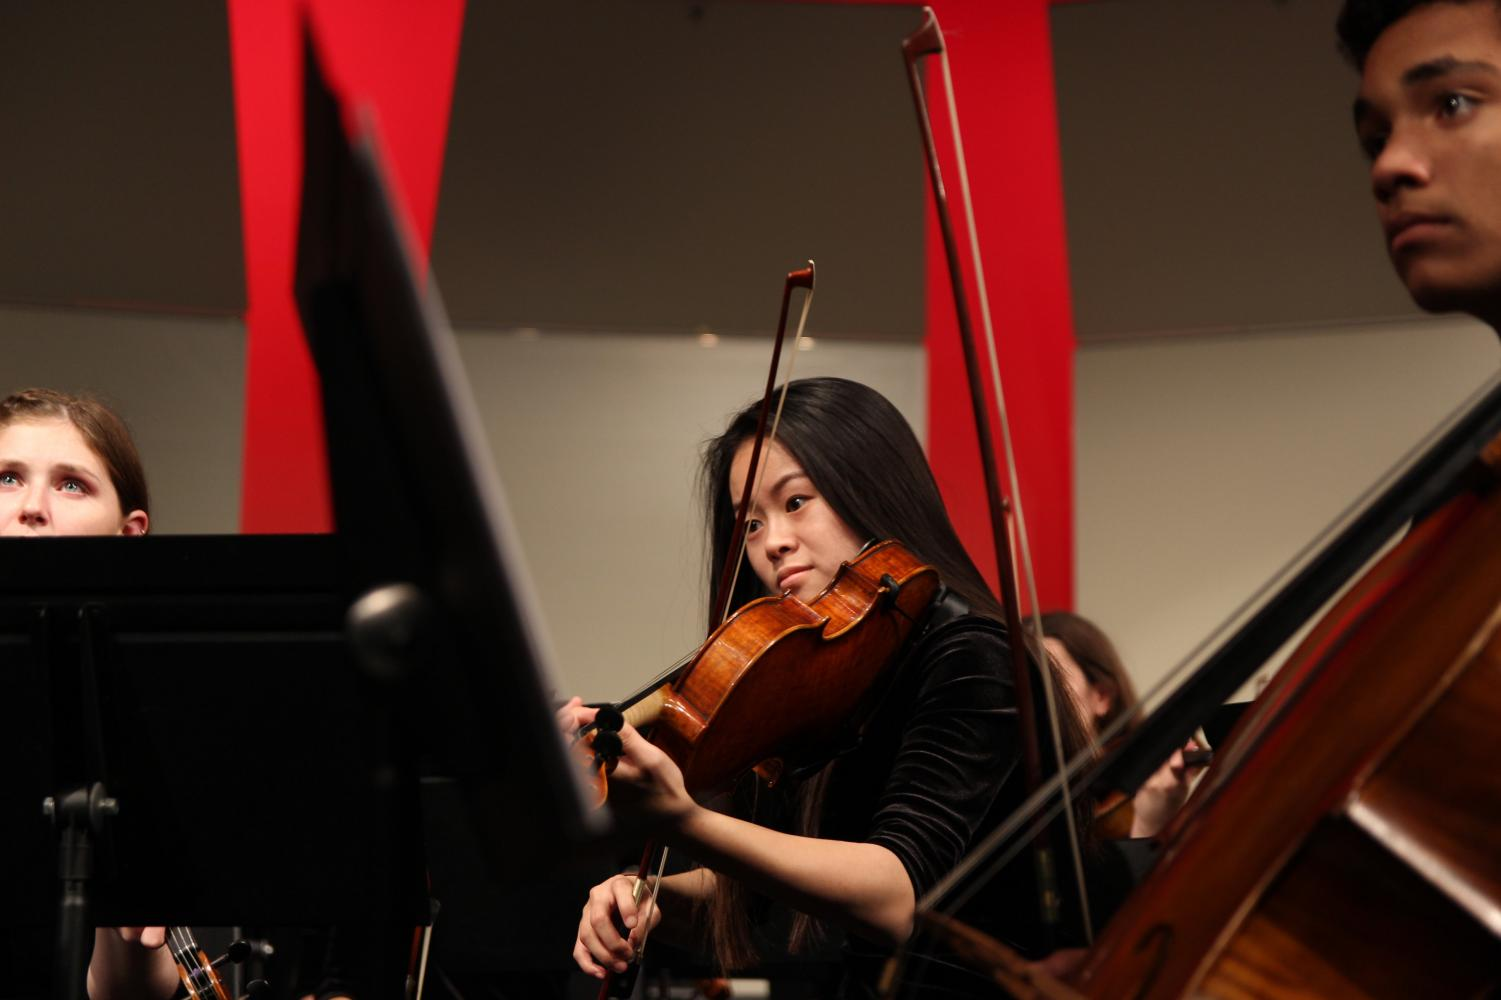 With+her+viola+tucked+under+her+chin%2C+Molly+Prow%2C+junior%2C+performs+at+the+winter+orchestra+concert+Dec.+6.+